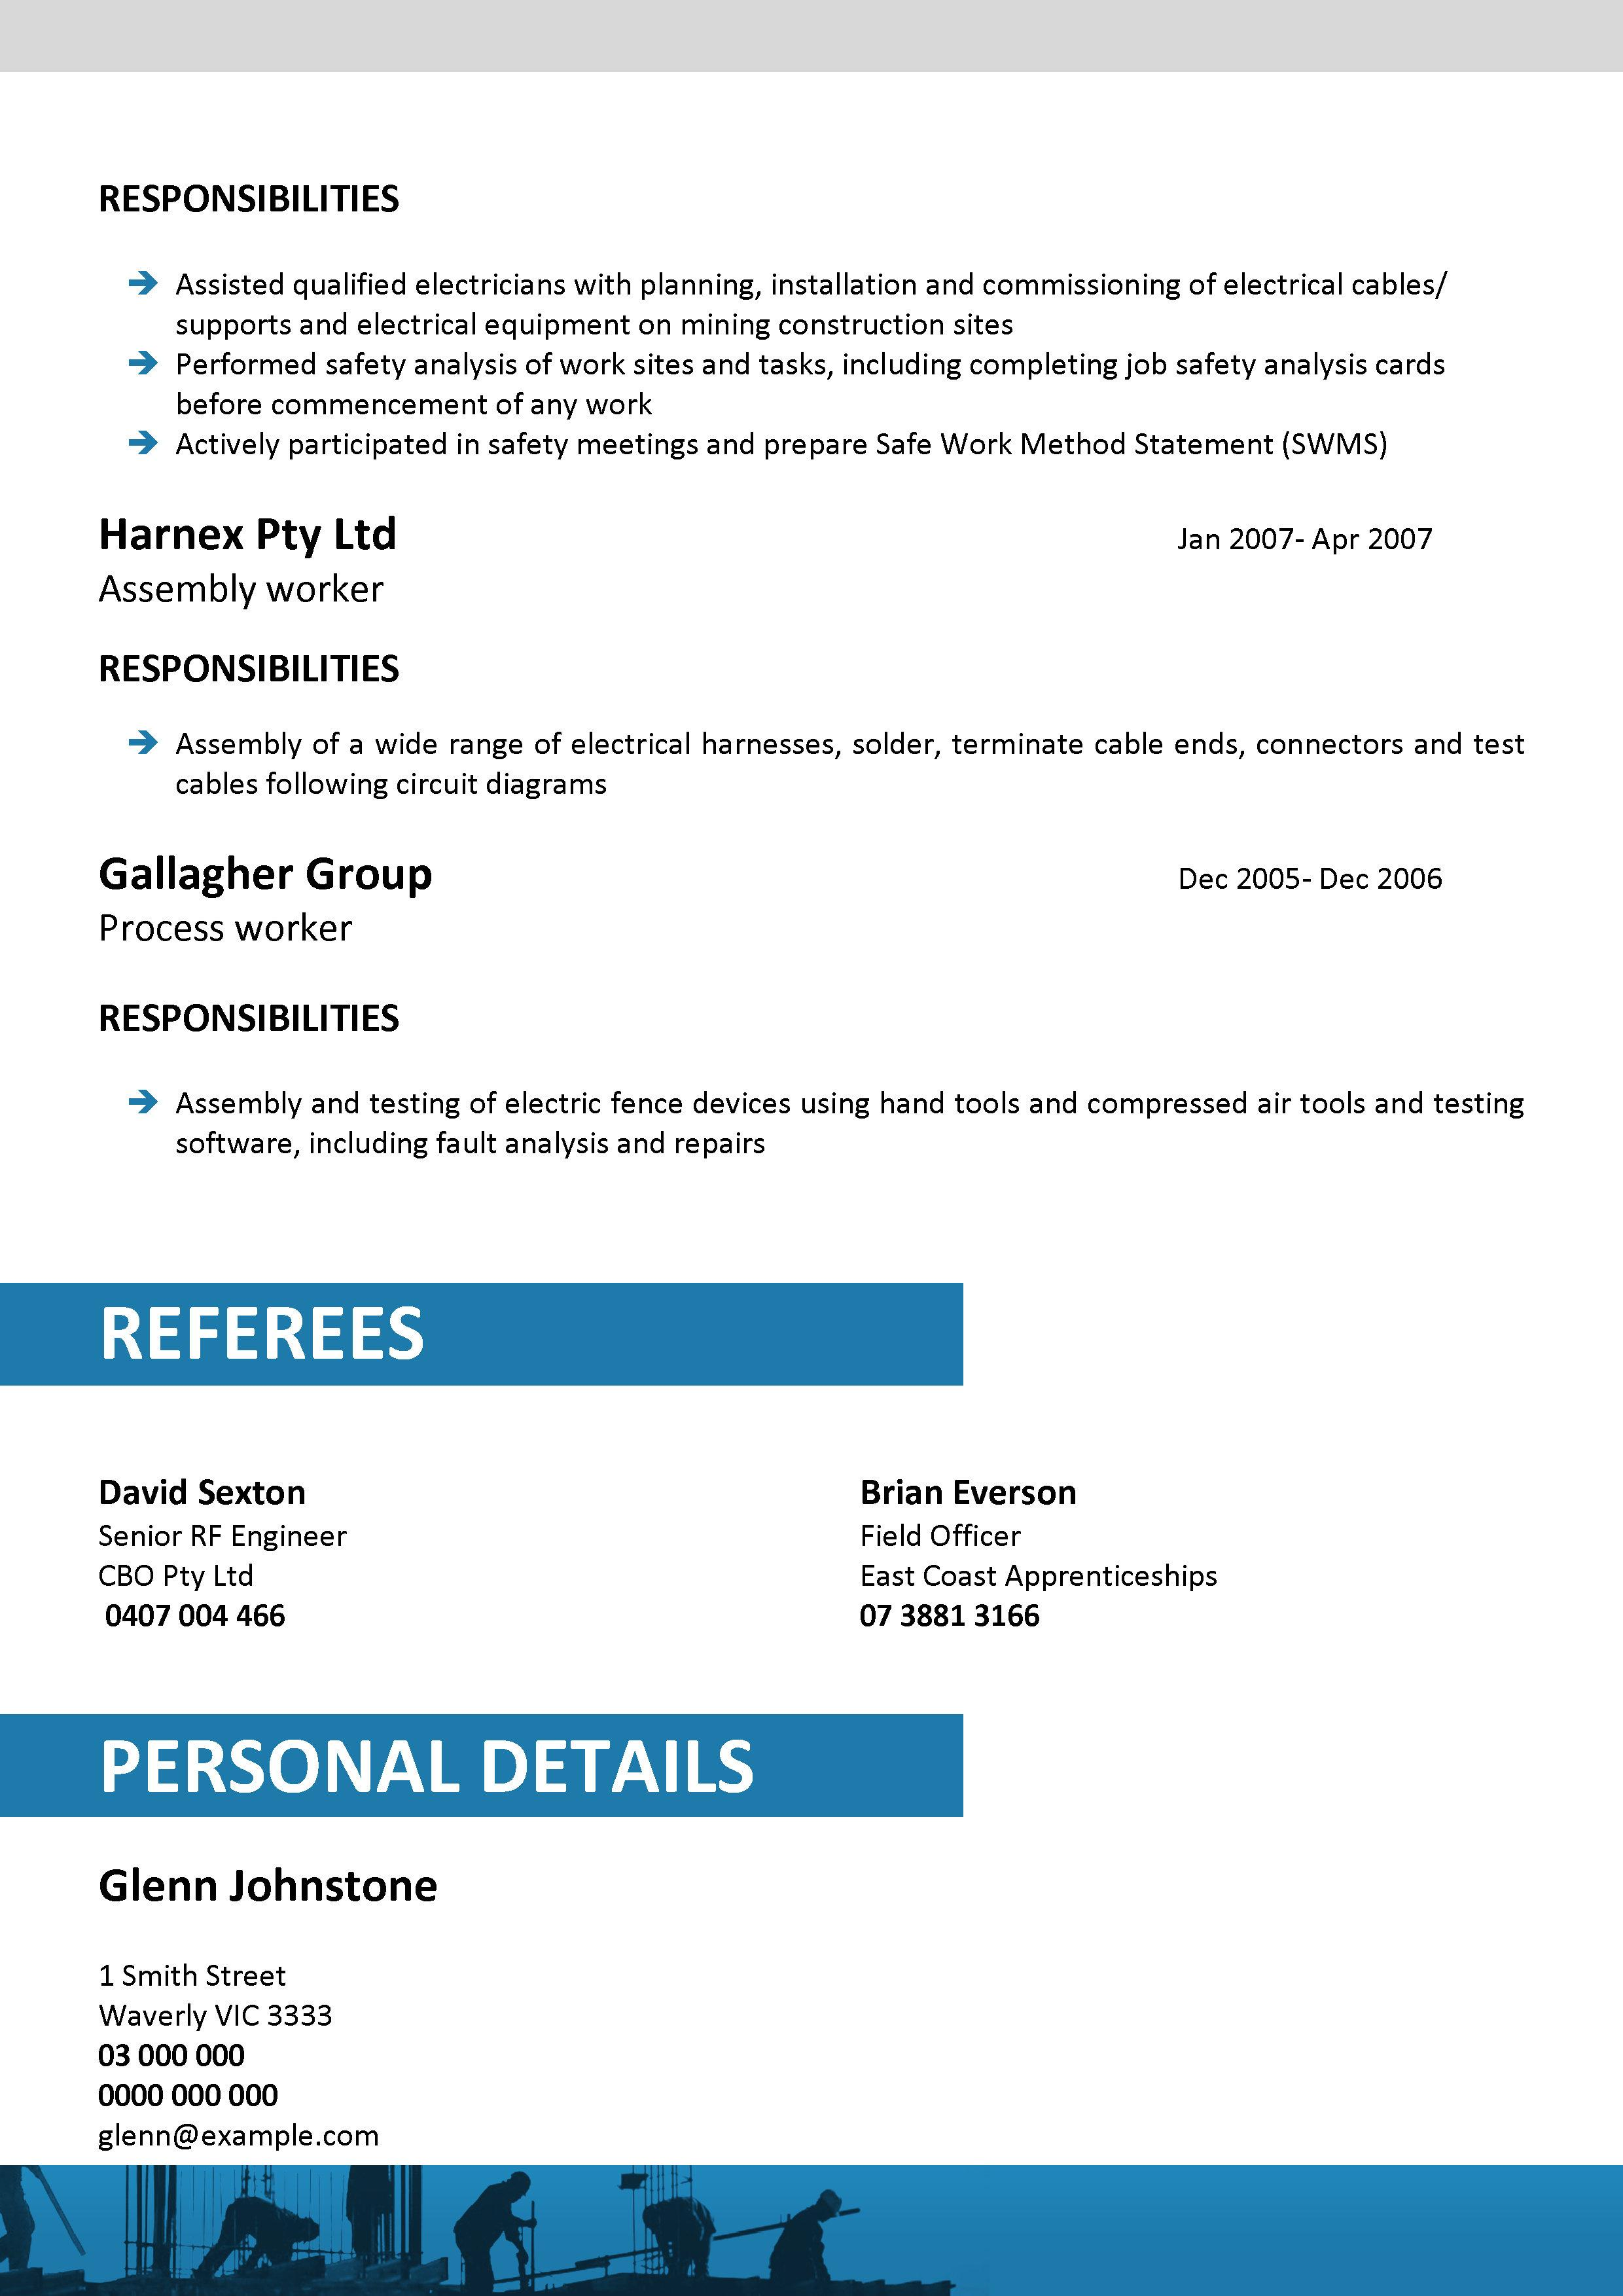 help composing resume we can help professional resume writing resume templates resume cv cover leter